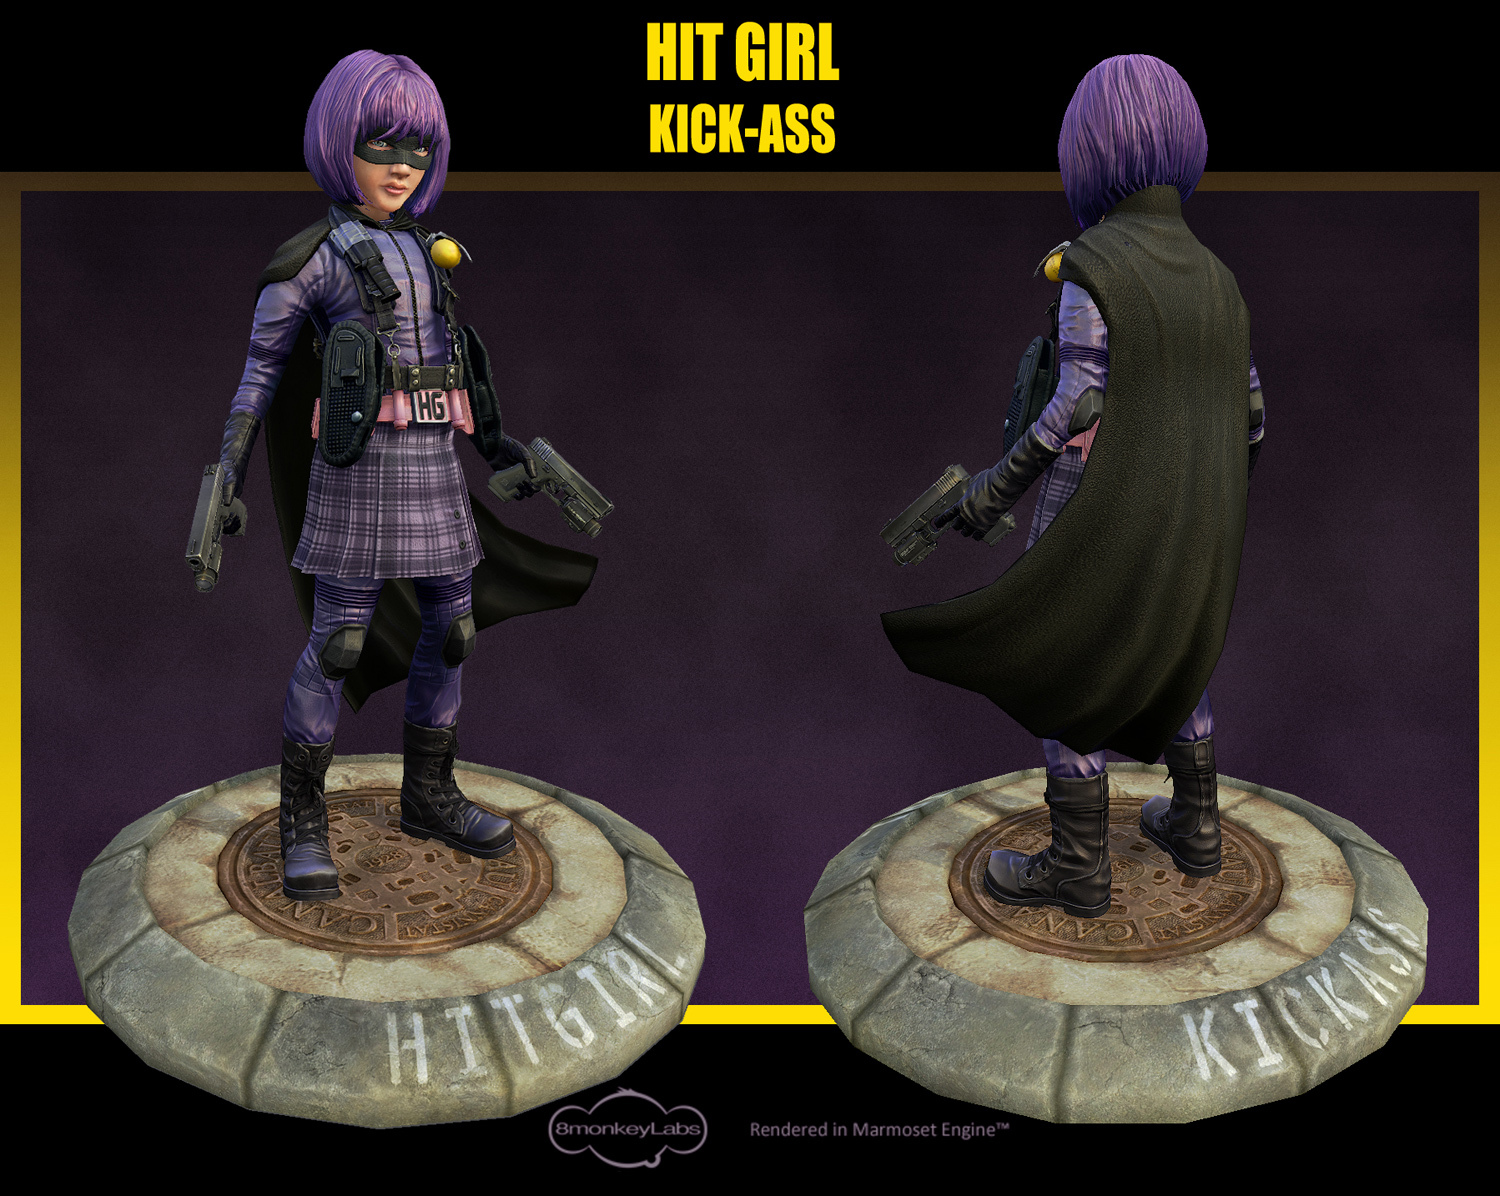 Hitgirl for web pose on base